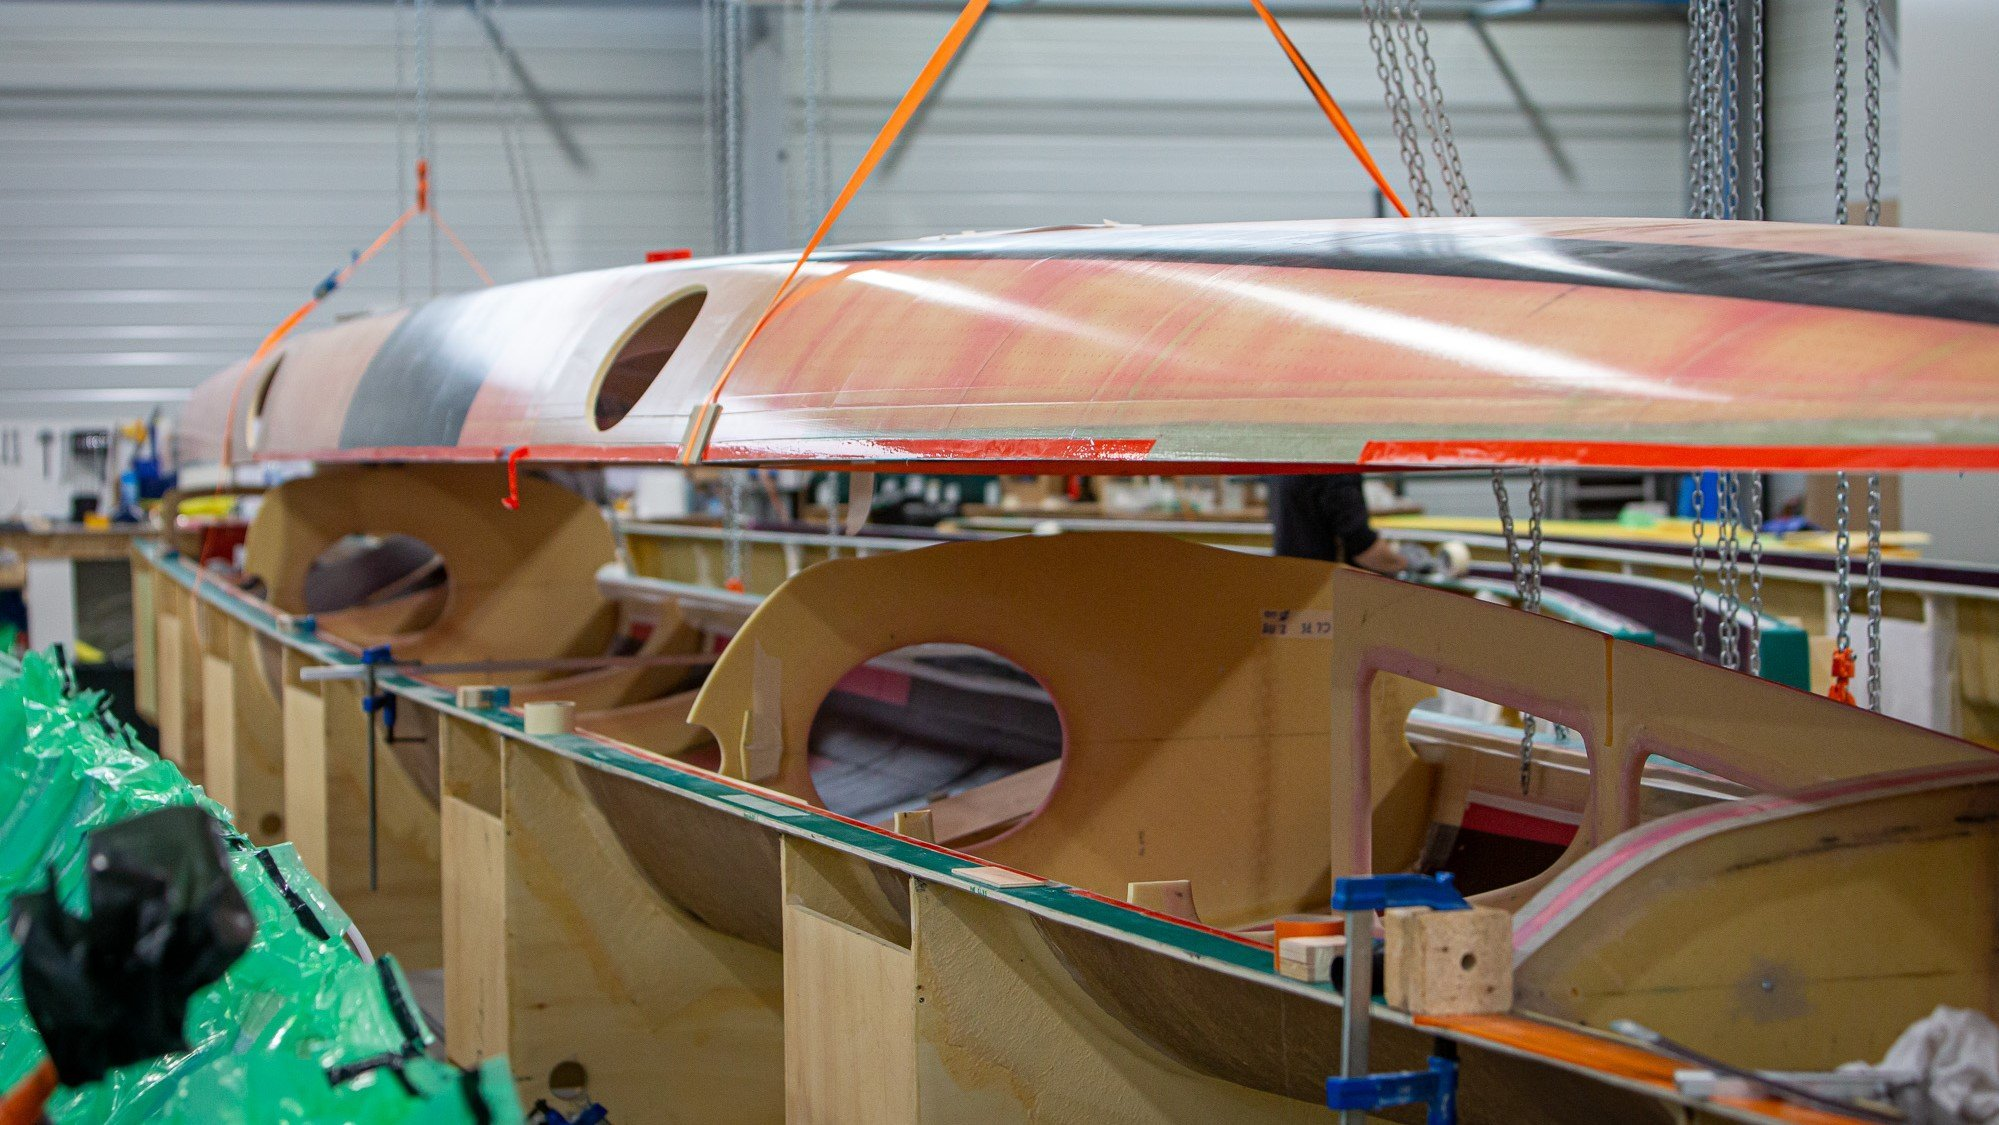 As with the floats and the outriggers, the structure and bulkheads were assembled by structural bonding using methacrylate products from the Arkema subsidiary Bostik.